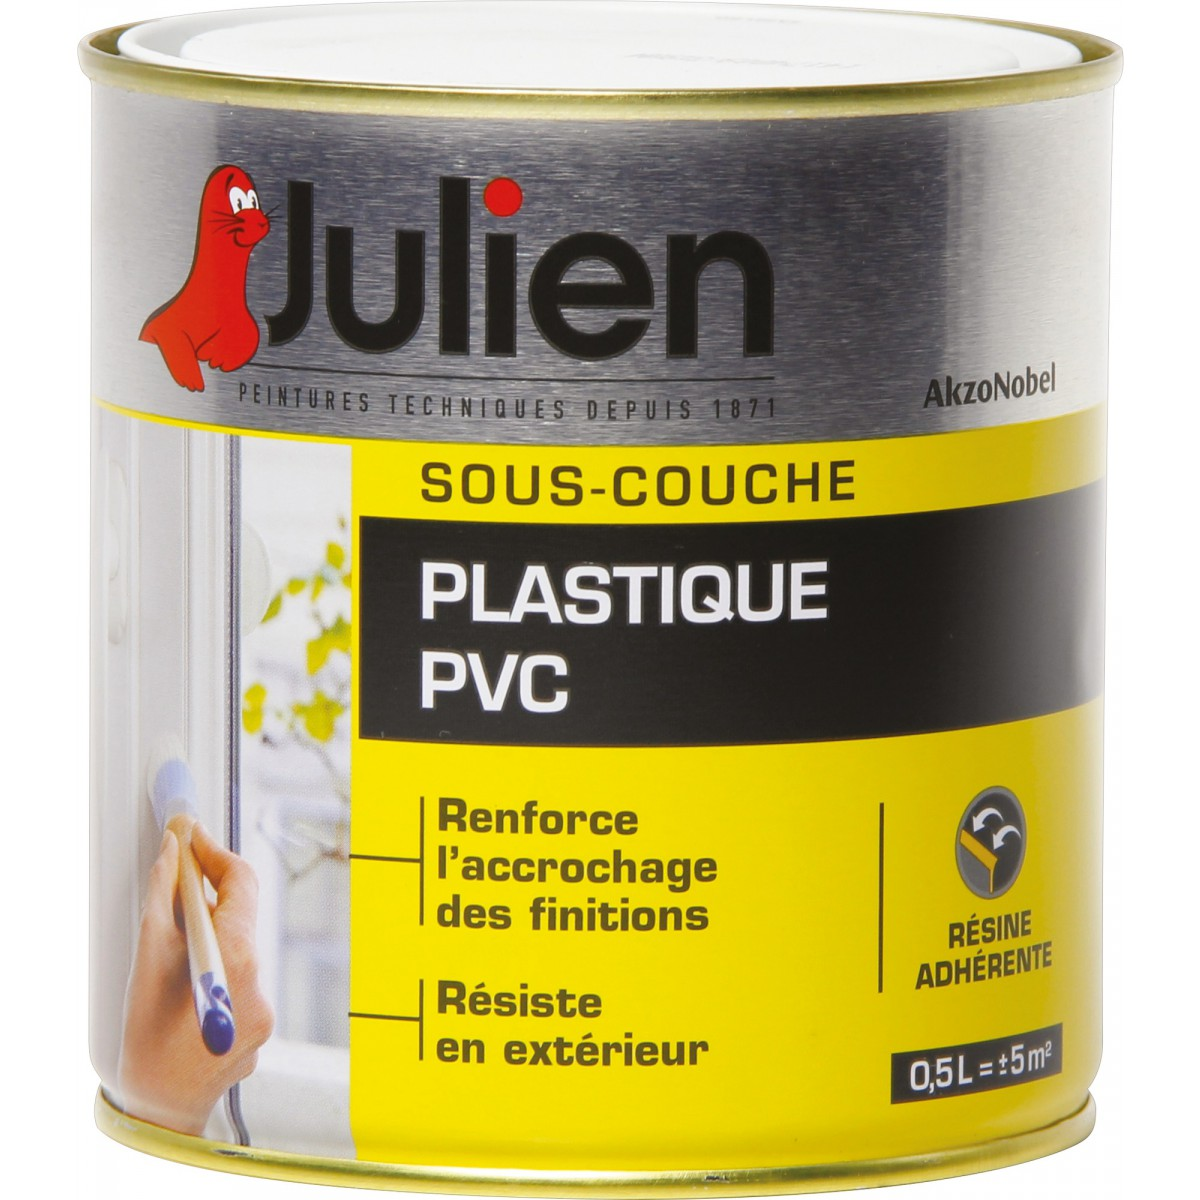 sous couche julien plastique pvc j2 500 ml de peinture. Black Bedroom Furniture Sets. Home Design Ideas